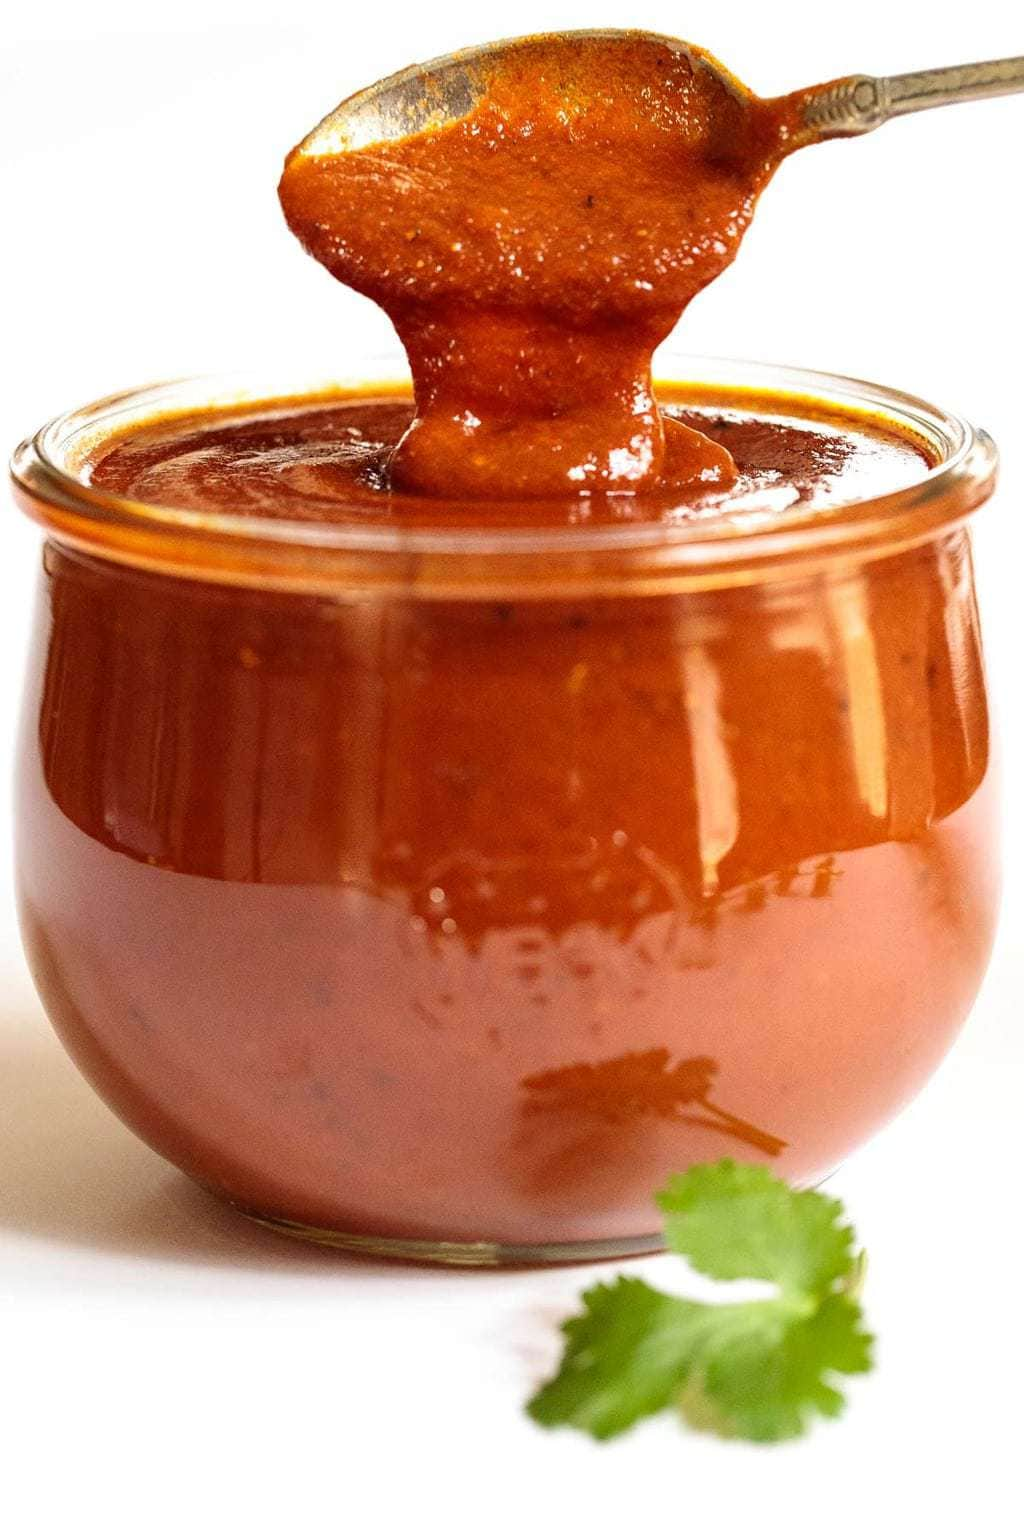 Photo of a Weck jar of 10-Minute Homemade Enchilada Sauce with a spoon dipping into the sauce.